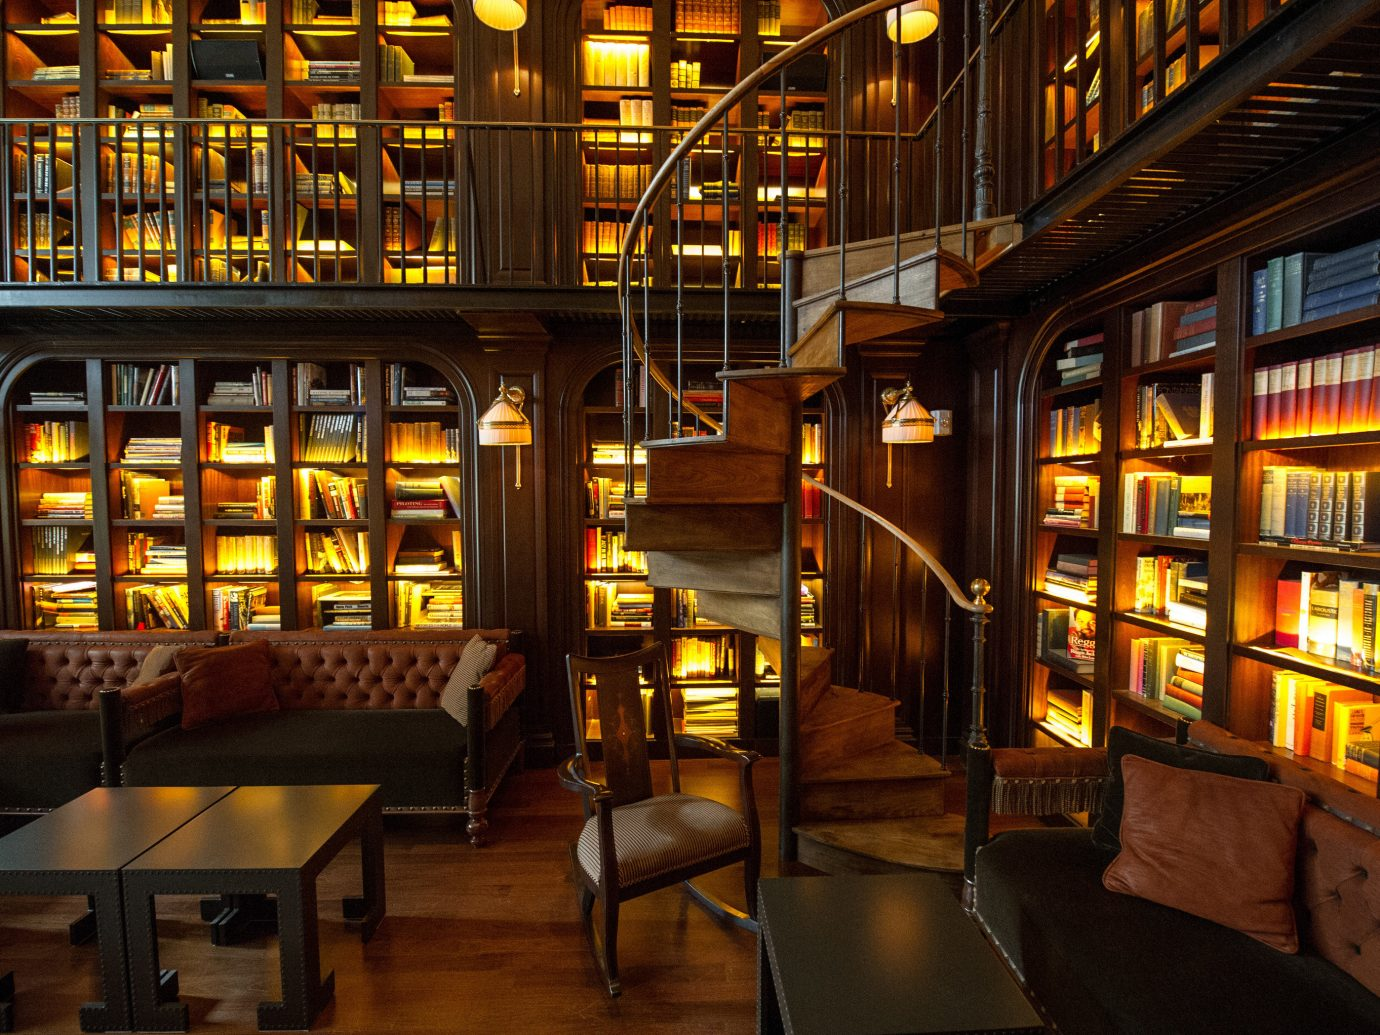 Offbeat library indoor building lighting interior design Design restaurant Bar bookselling room